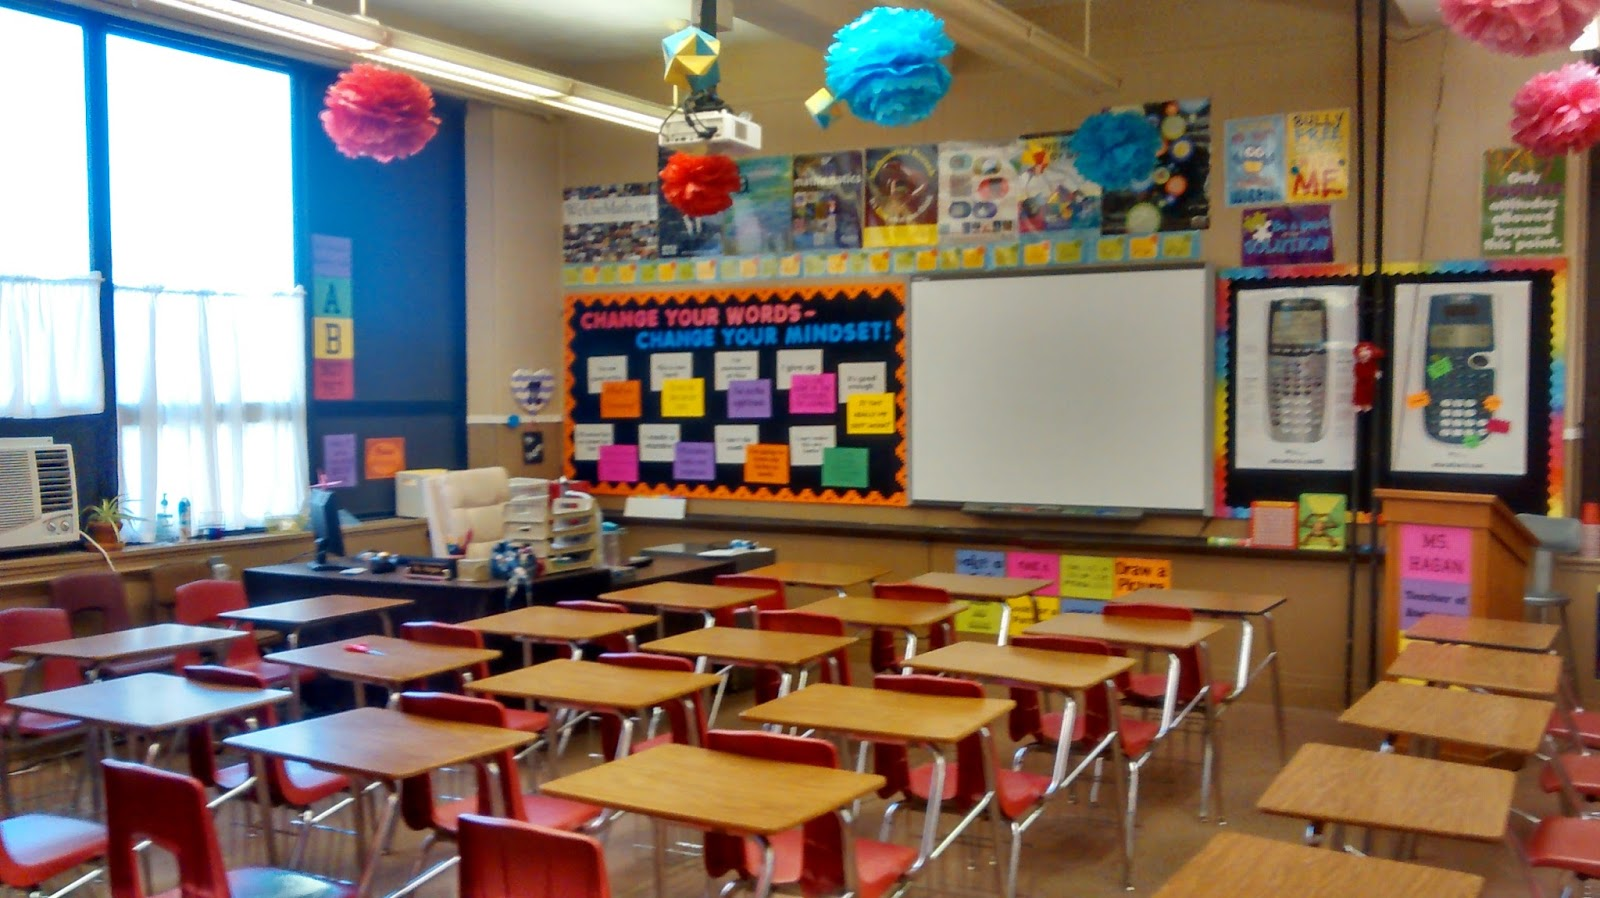 Classroom Decoration Colorful : Math love classroom pics my most colorful